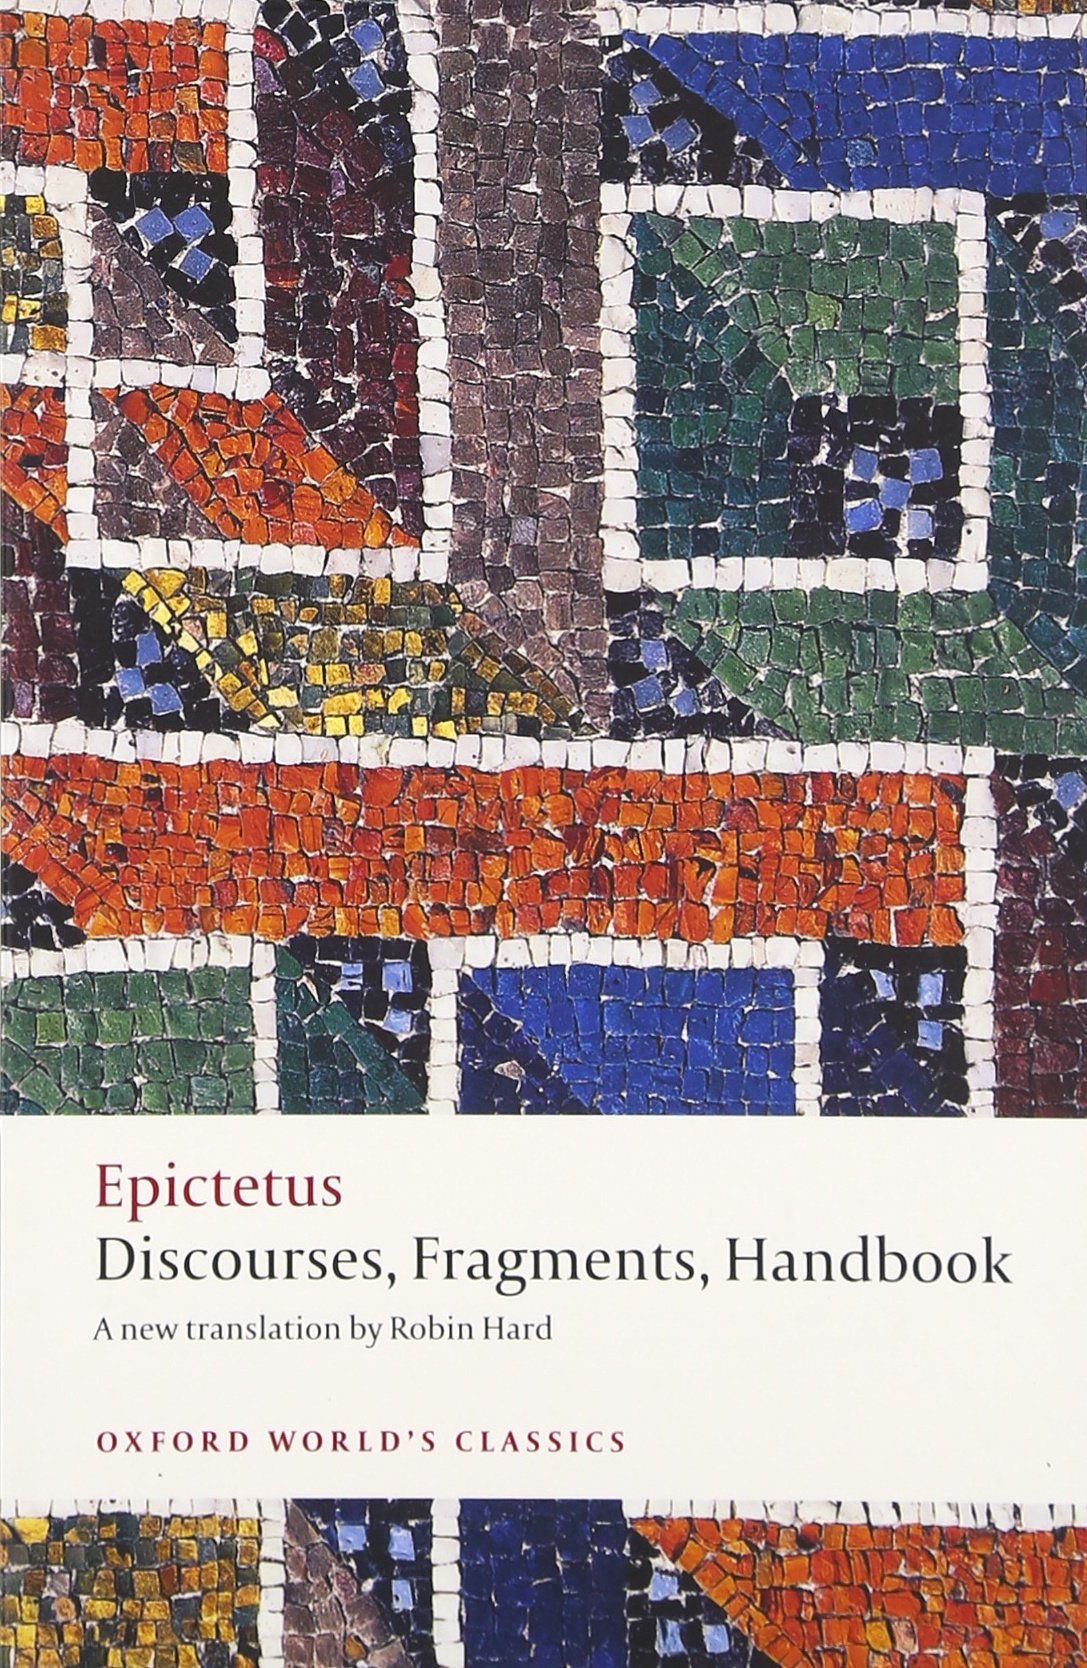 Discourses, Fragments, Handbook (Oxford World's Classics)